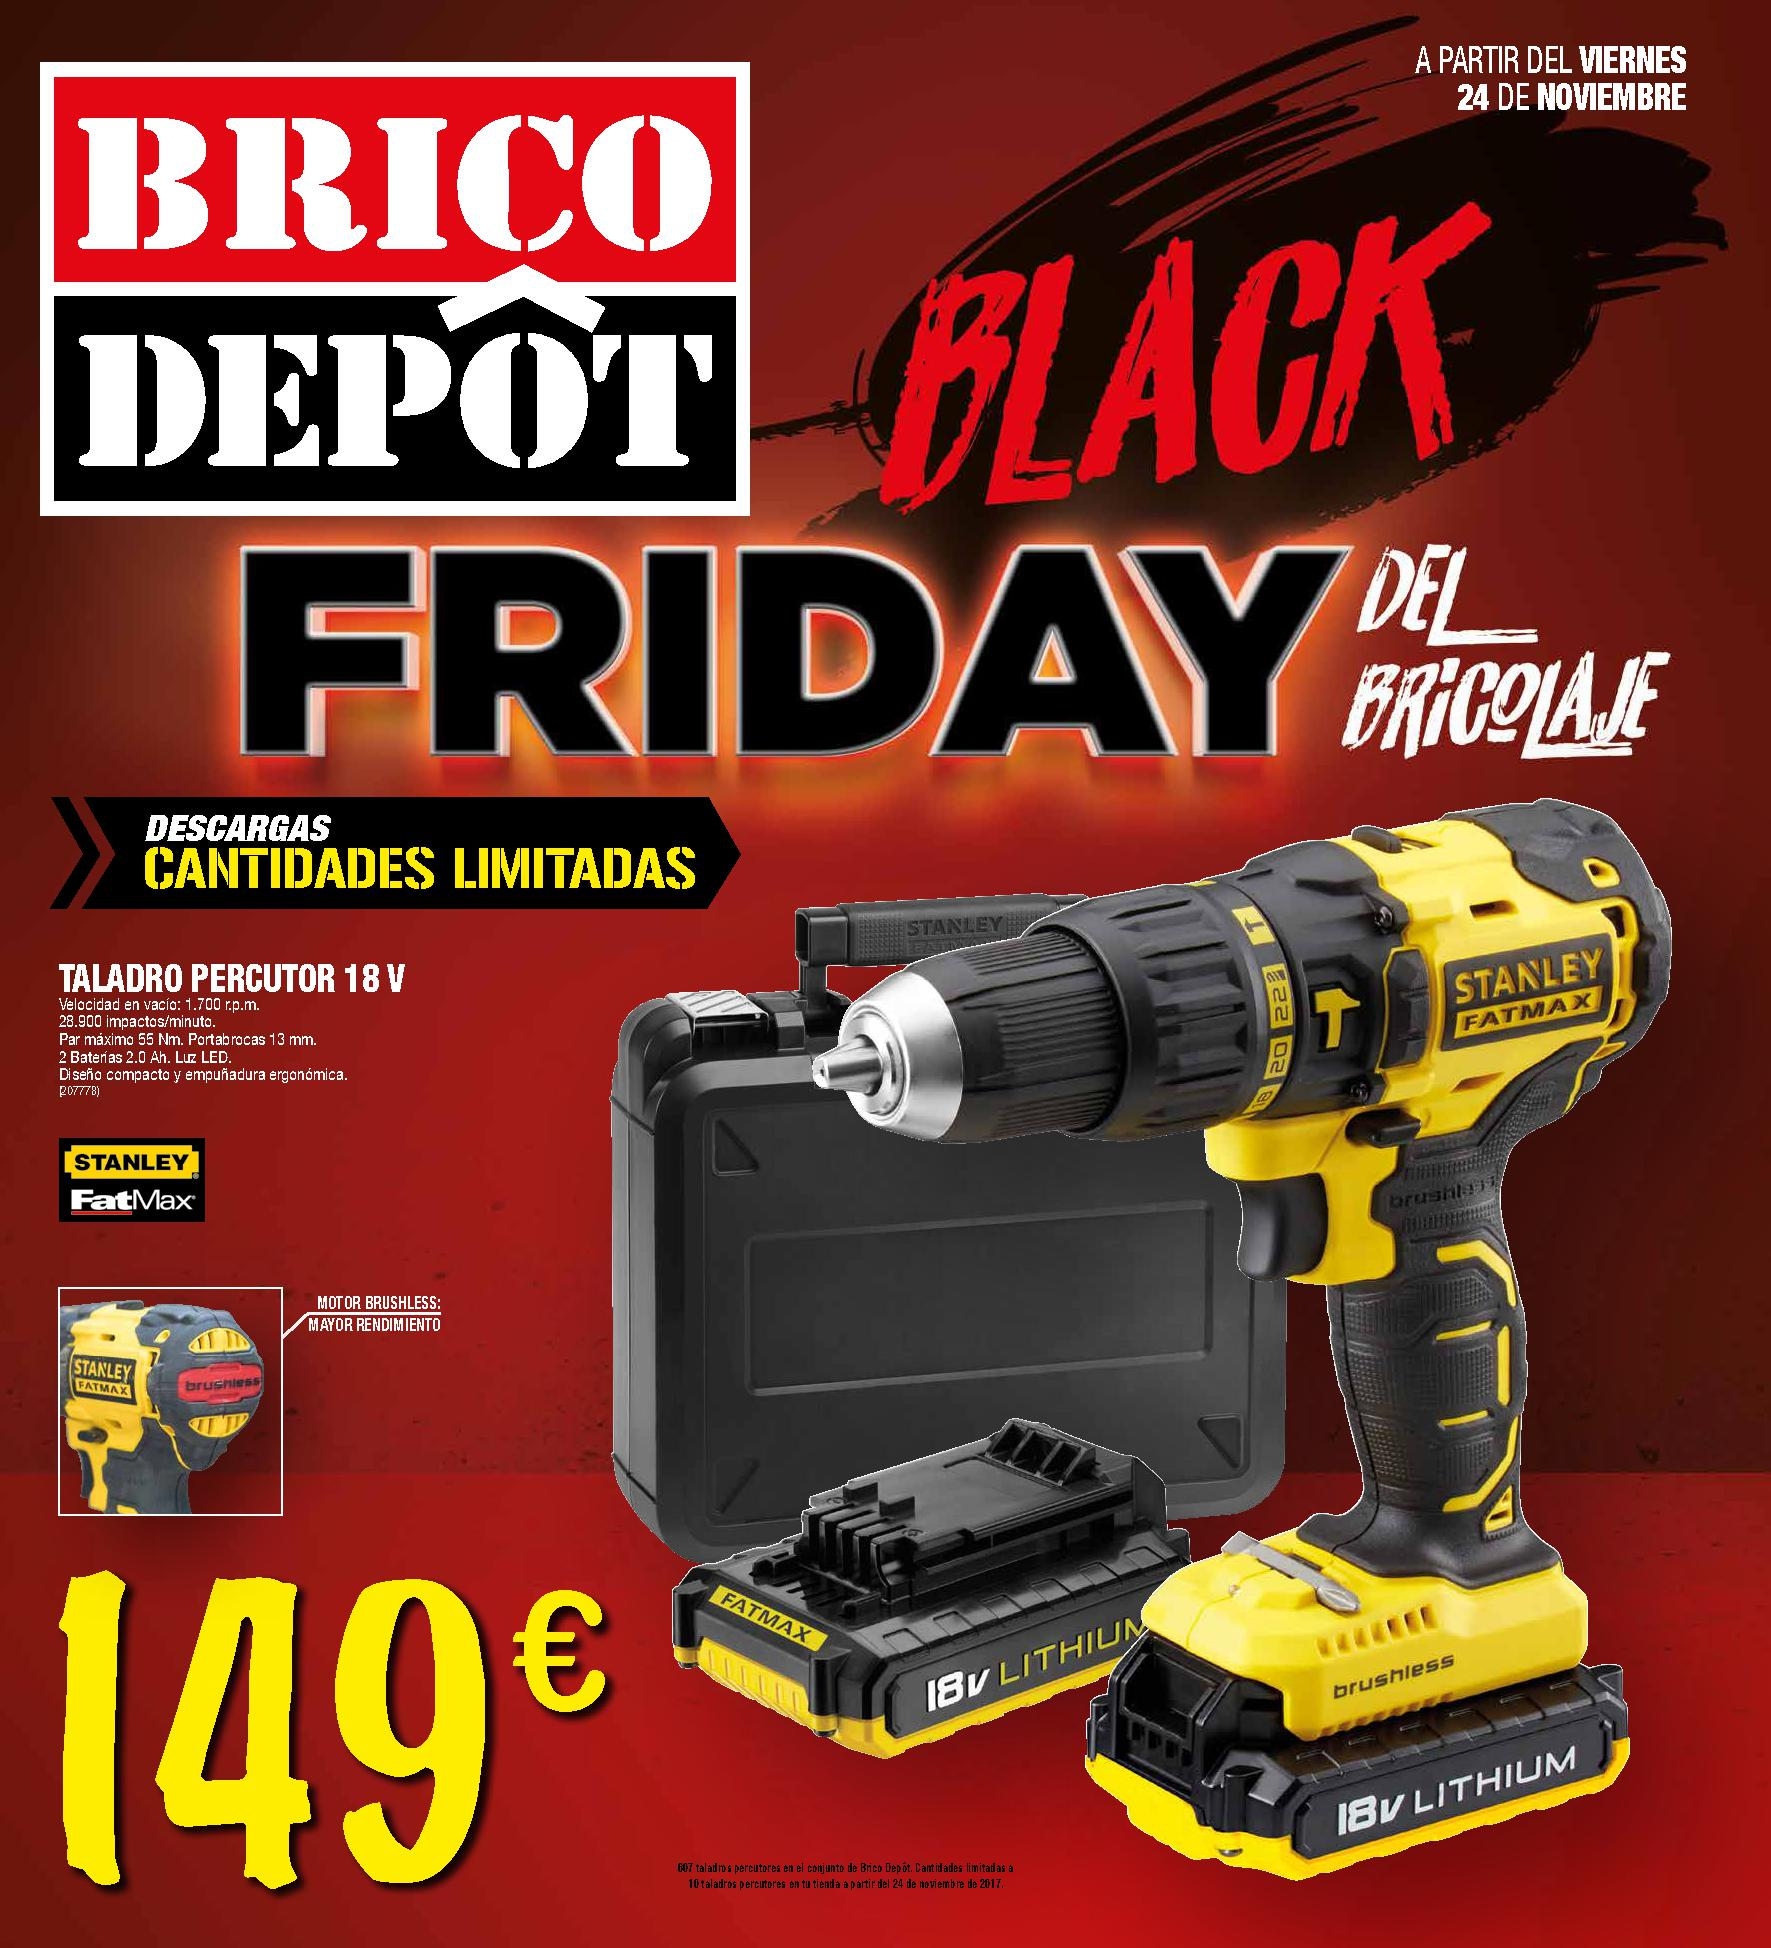 Seleccion Black Friday Brico Depot 2017 (1)